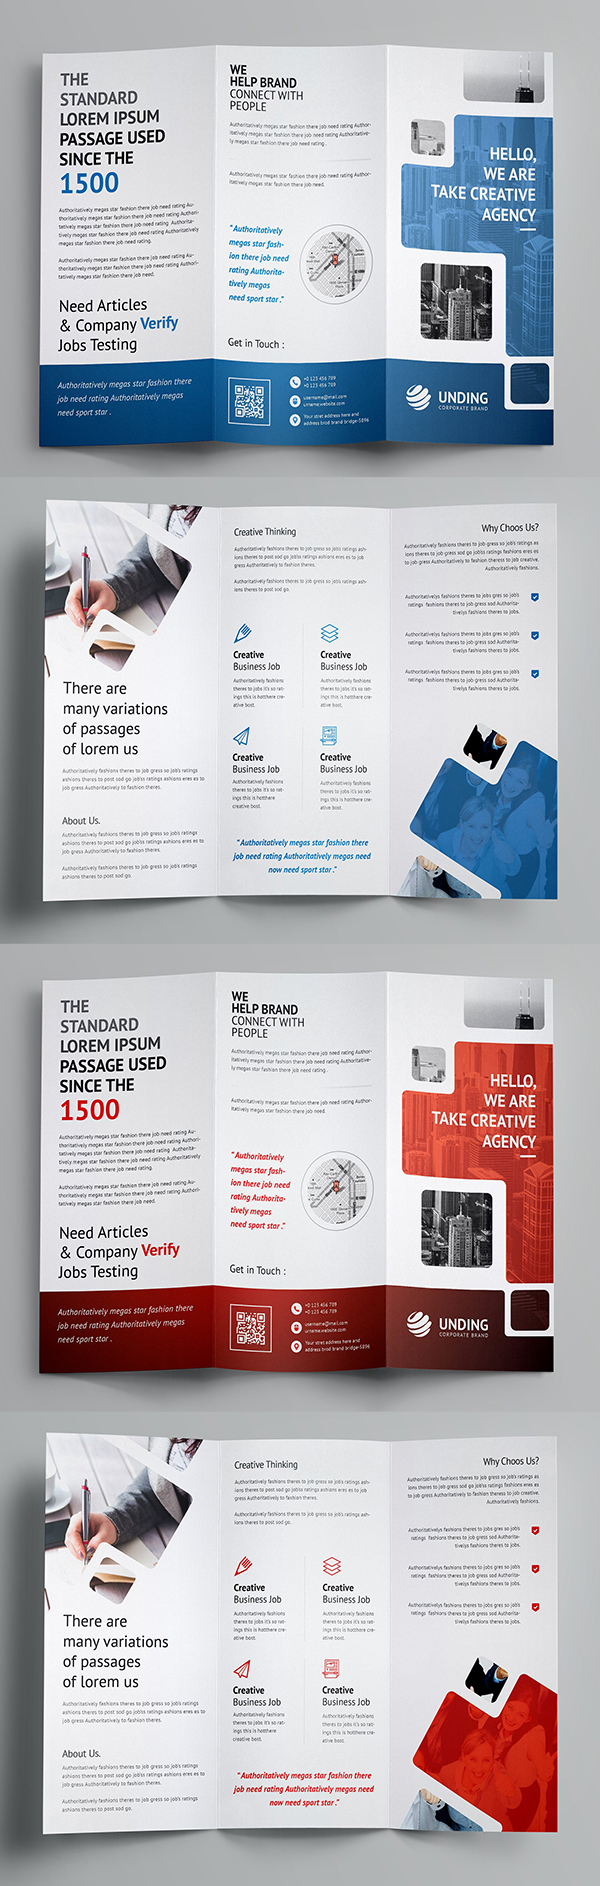 100 Professional Corporate Brochure Templates - 67